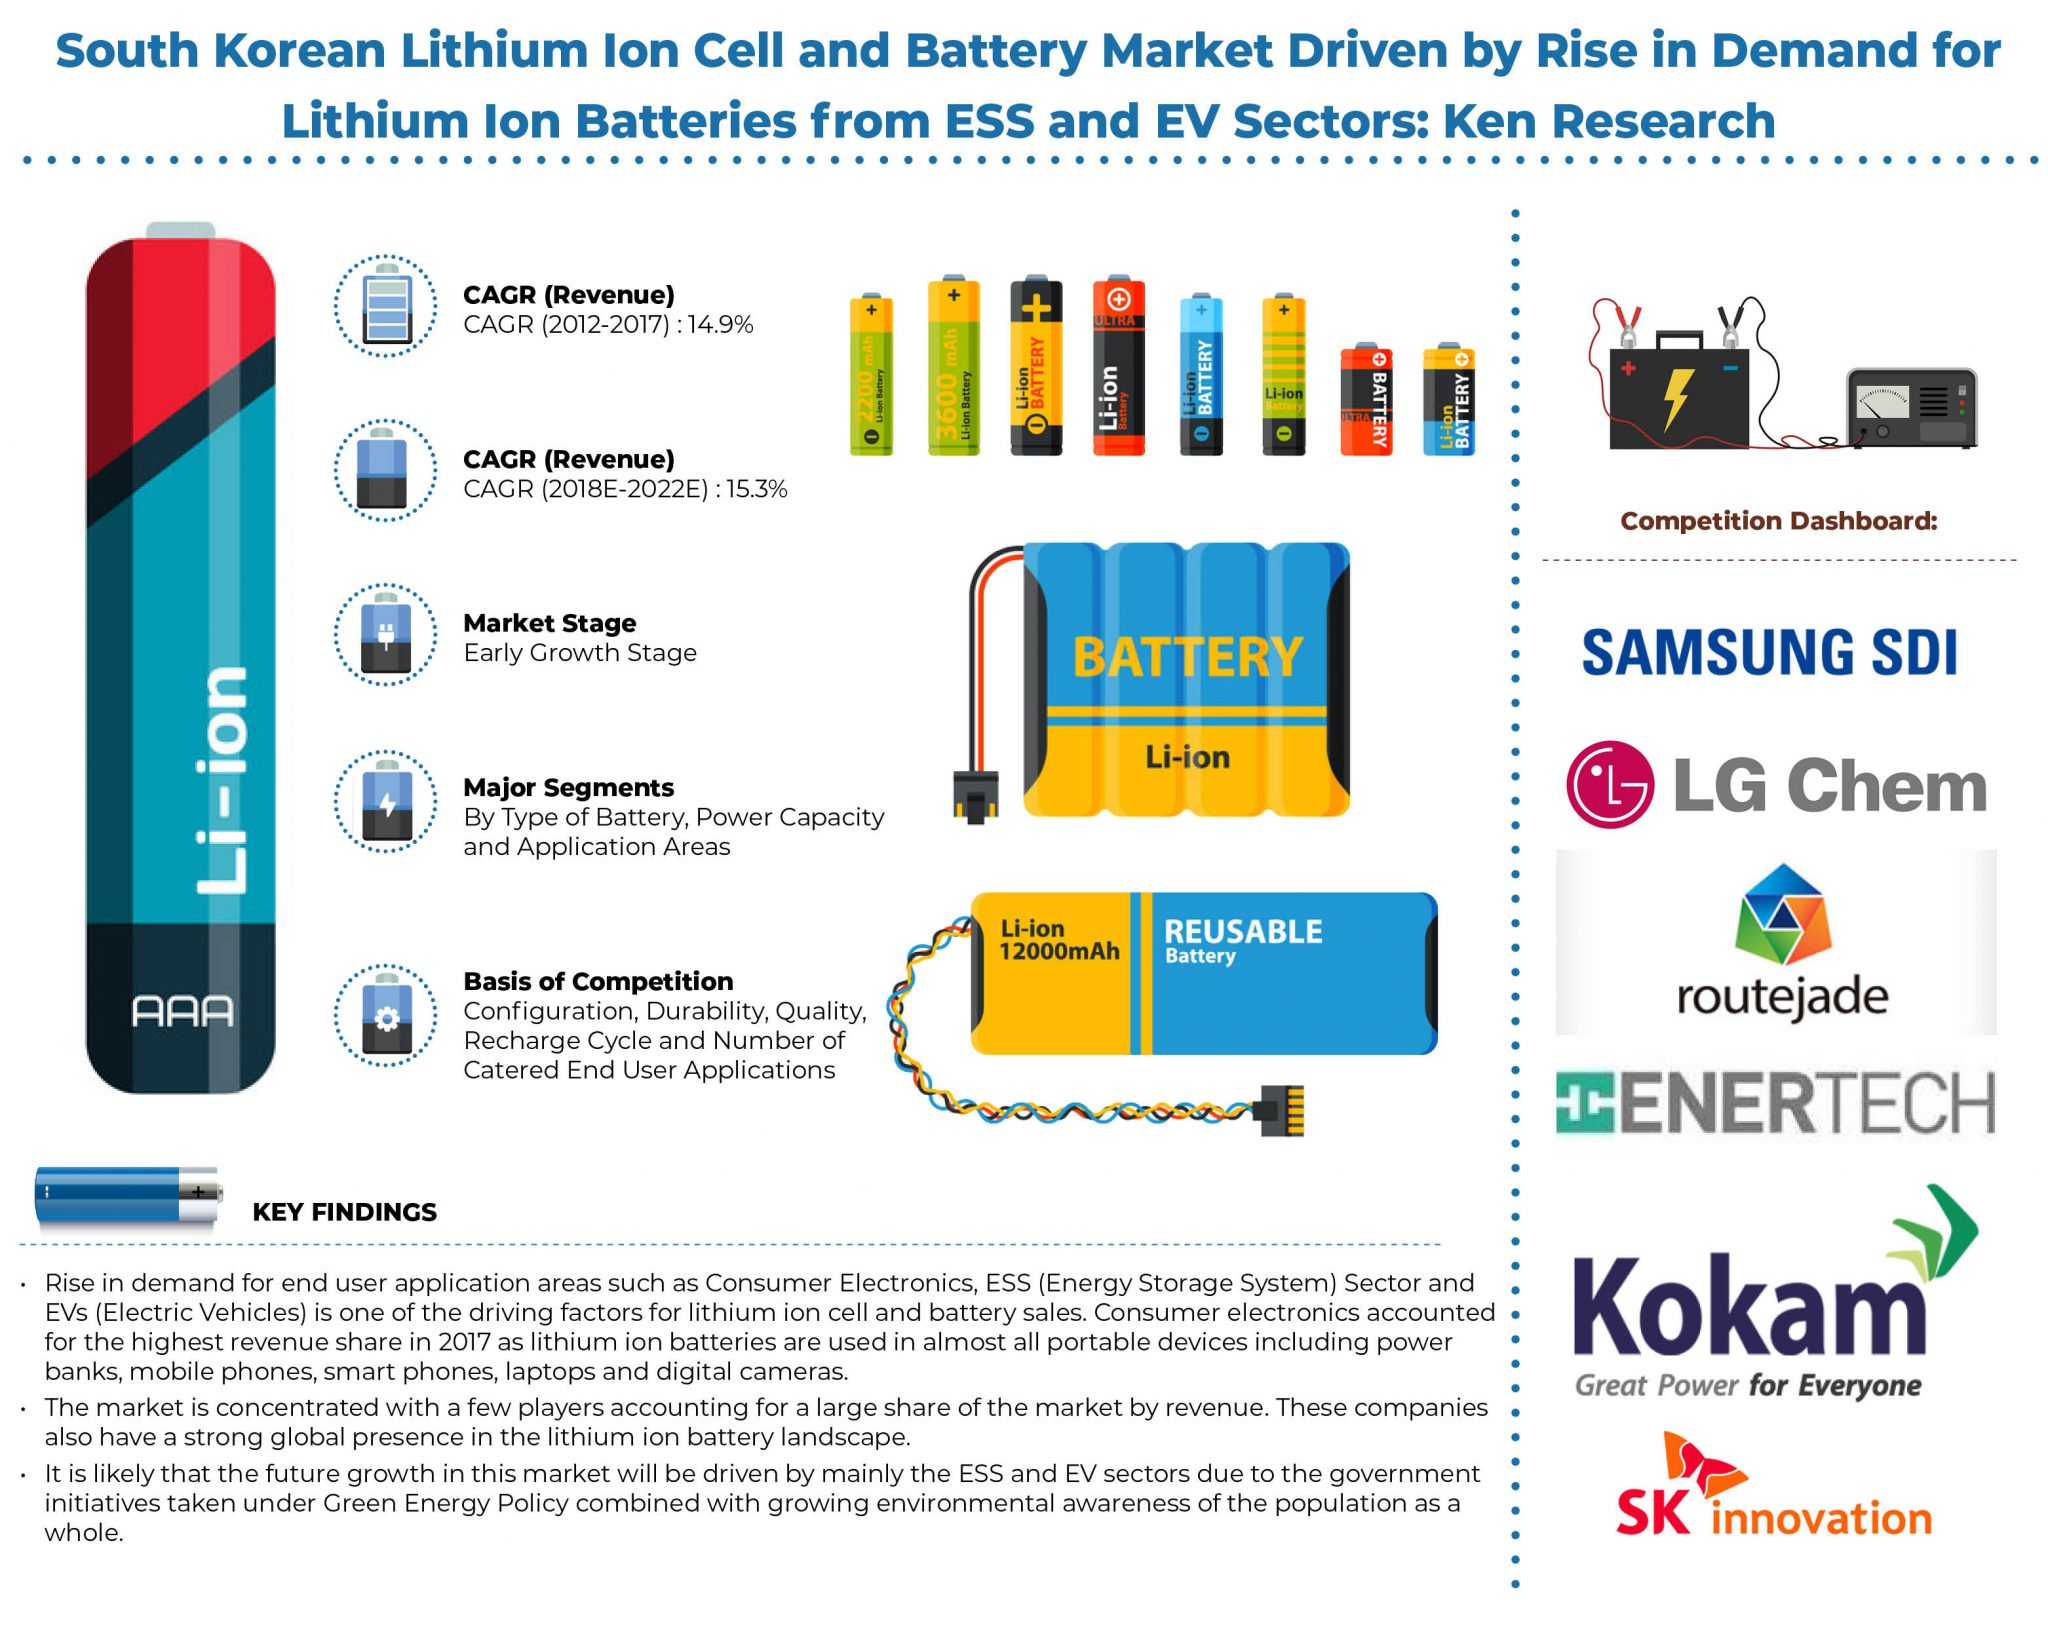 South Korean Lithium Ion Cell and Battery Market